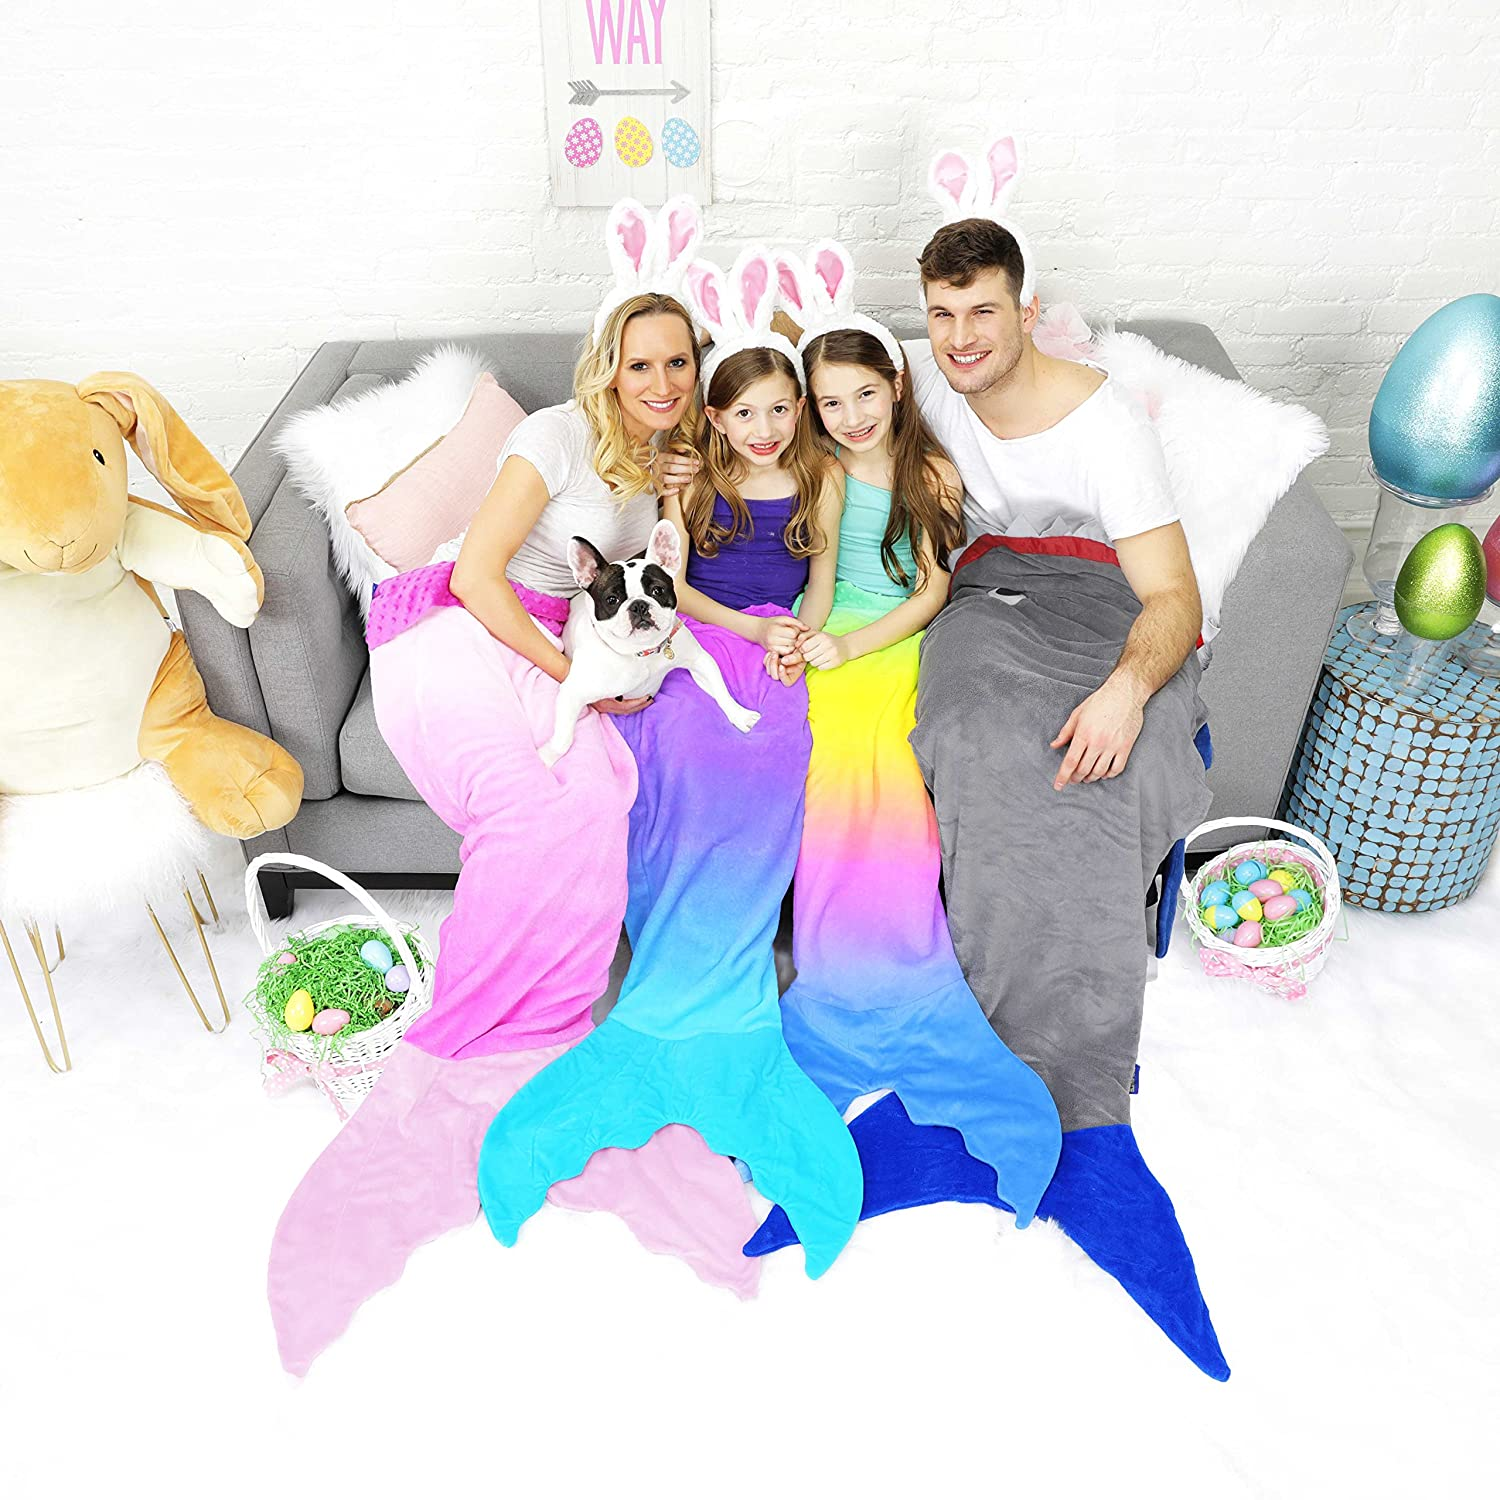 Stunning Aqua Ombre Design Luxurious Minky Fleece Mermaid Tail for Teens or Adults Adult Mermaid Tail Blanket